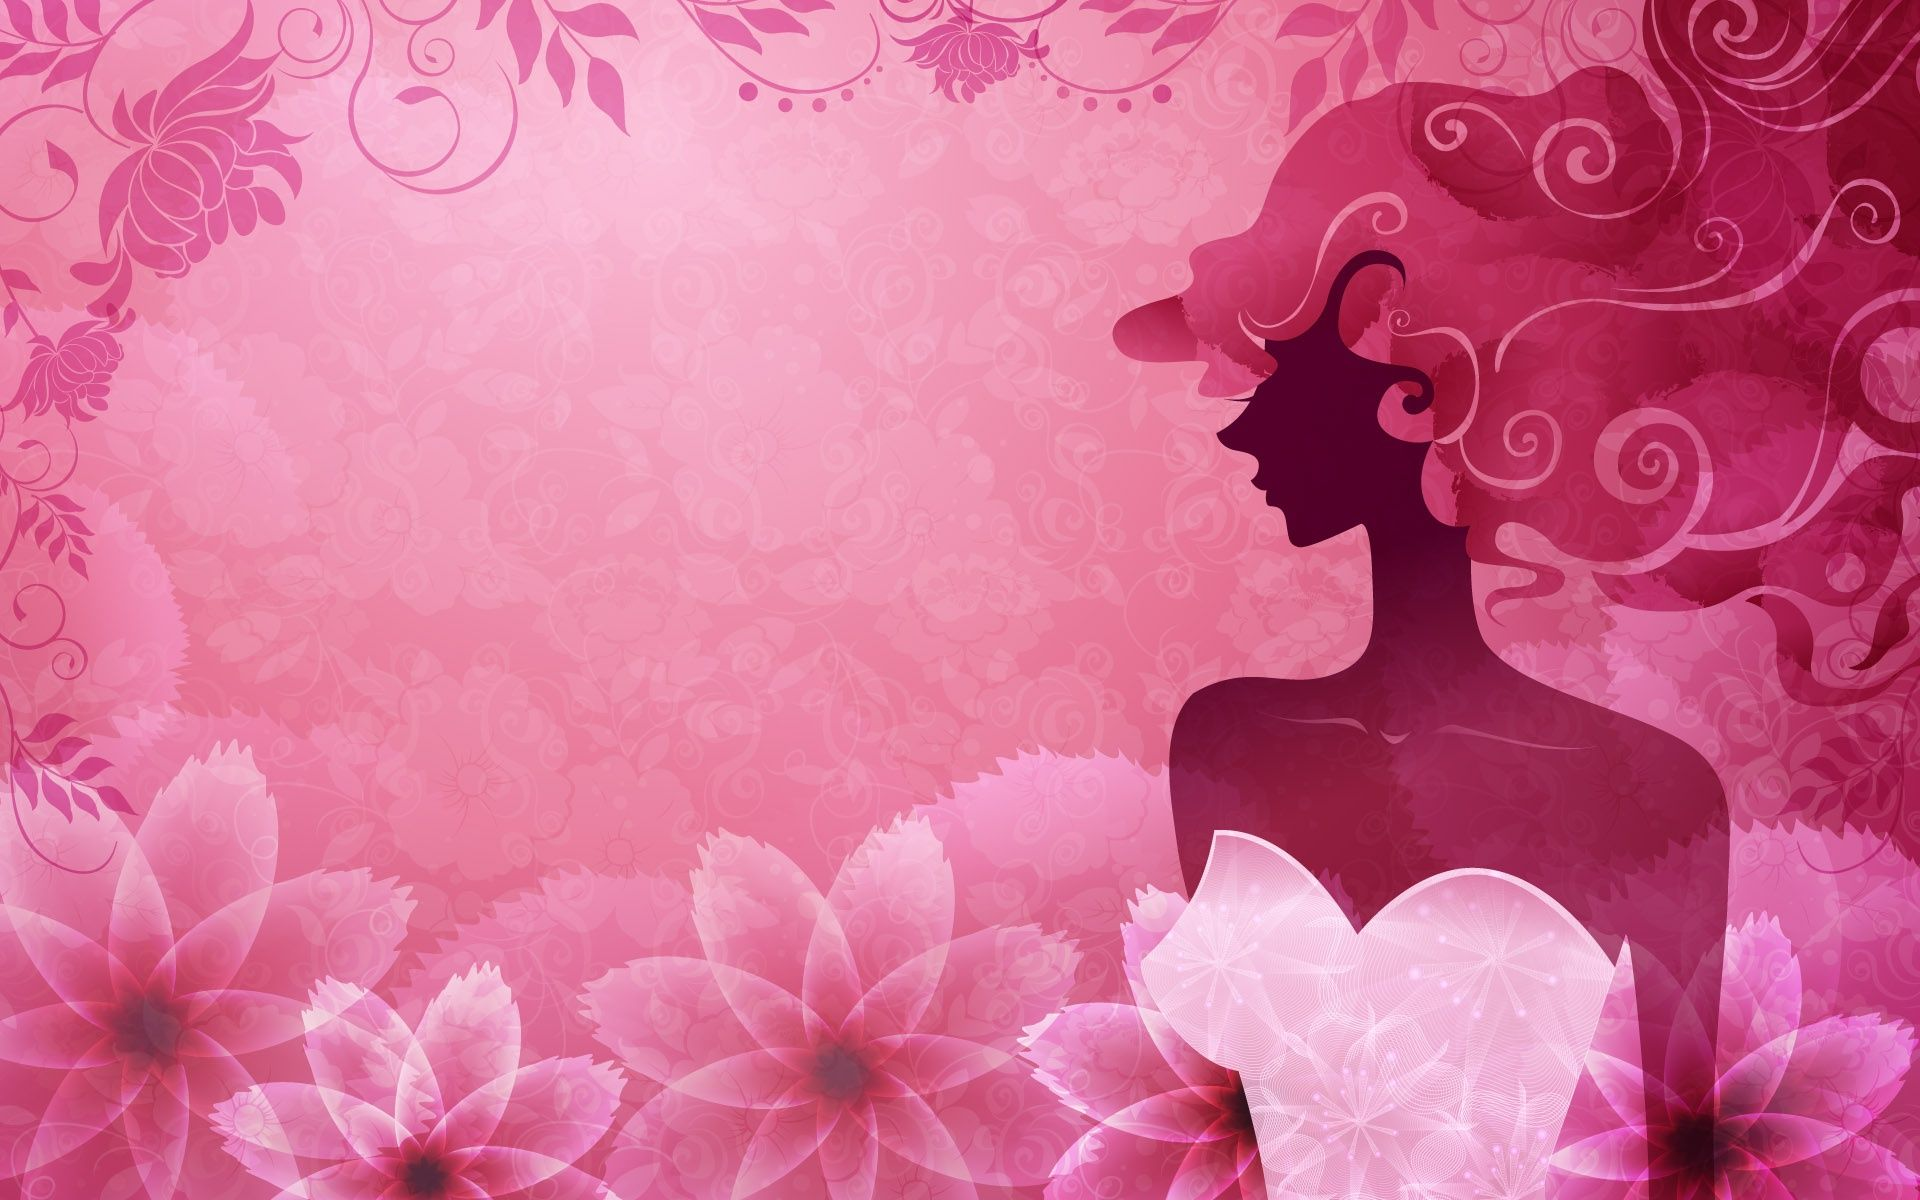 Cool wallpaper designs for girls cool background designs for girls pink design girl wallpaper - Cool designs for girls ...